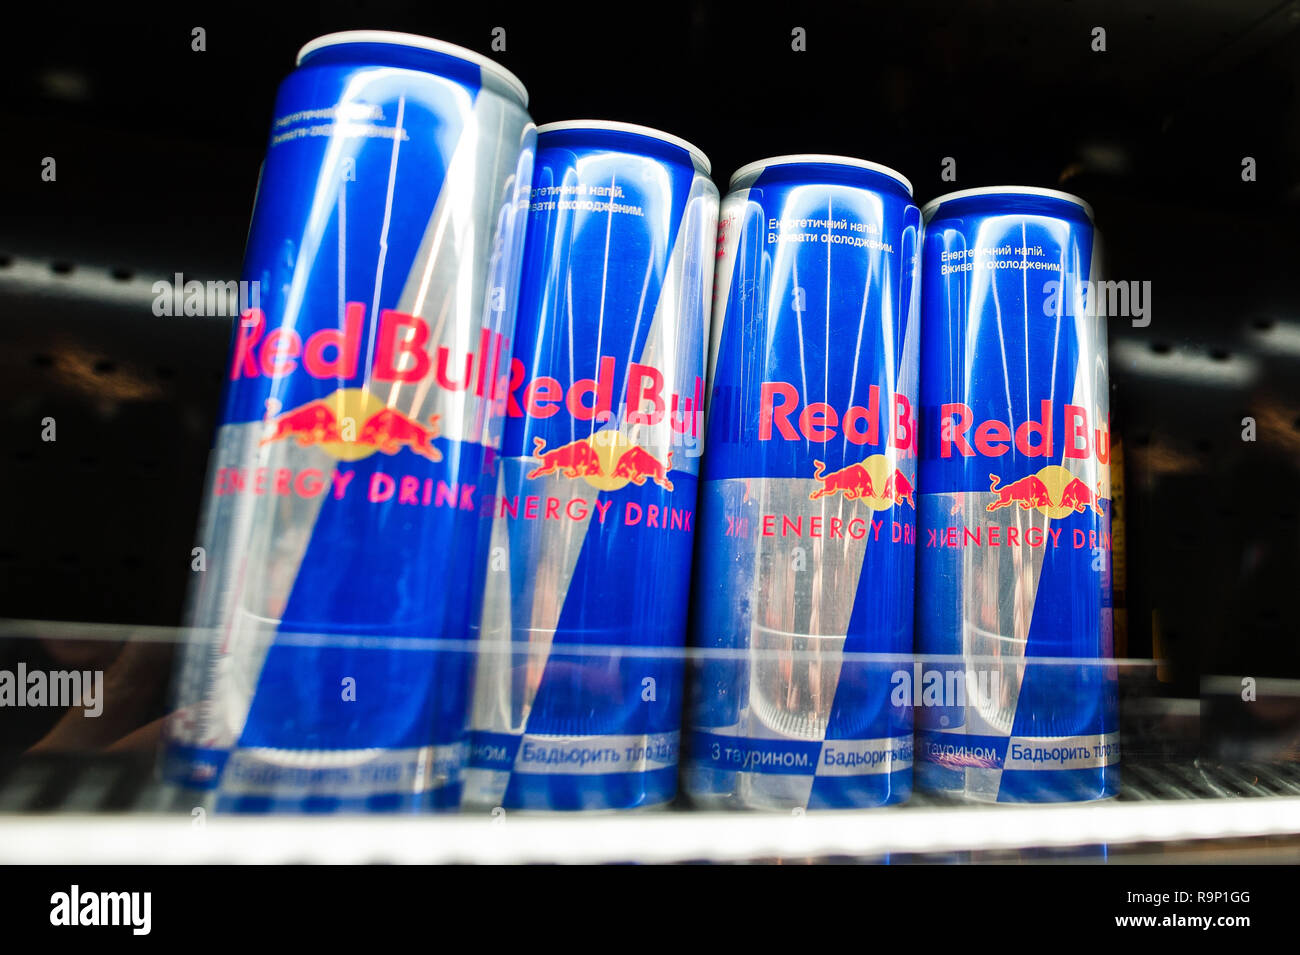 Red Bull Kühlschrank Slim : Cans energy drink red bull stockfotos cans energy drink red bull